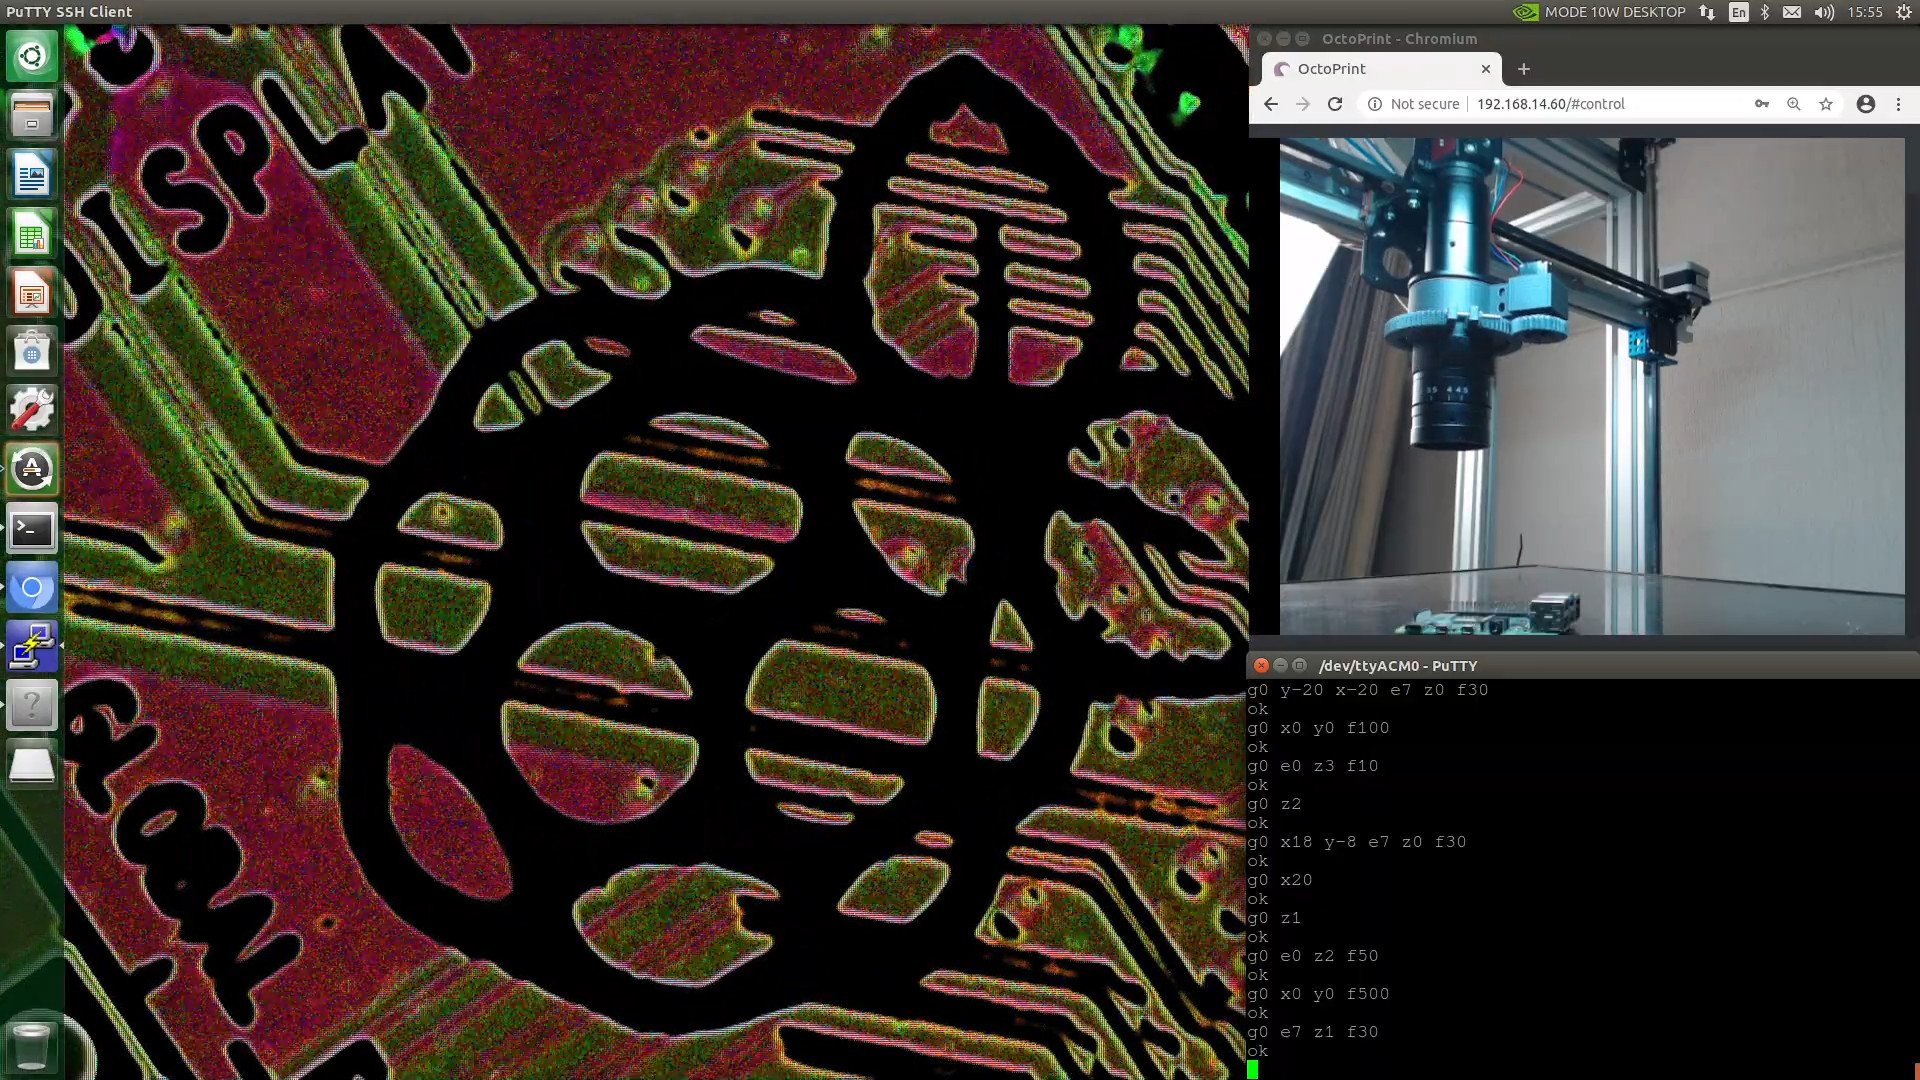 Modified 3D printer is also a great microscope